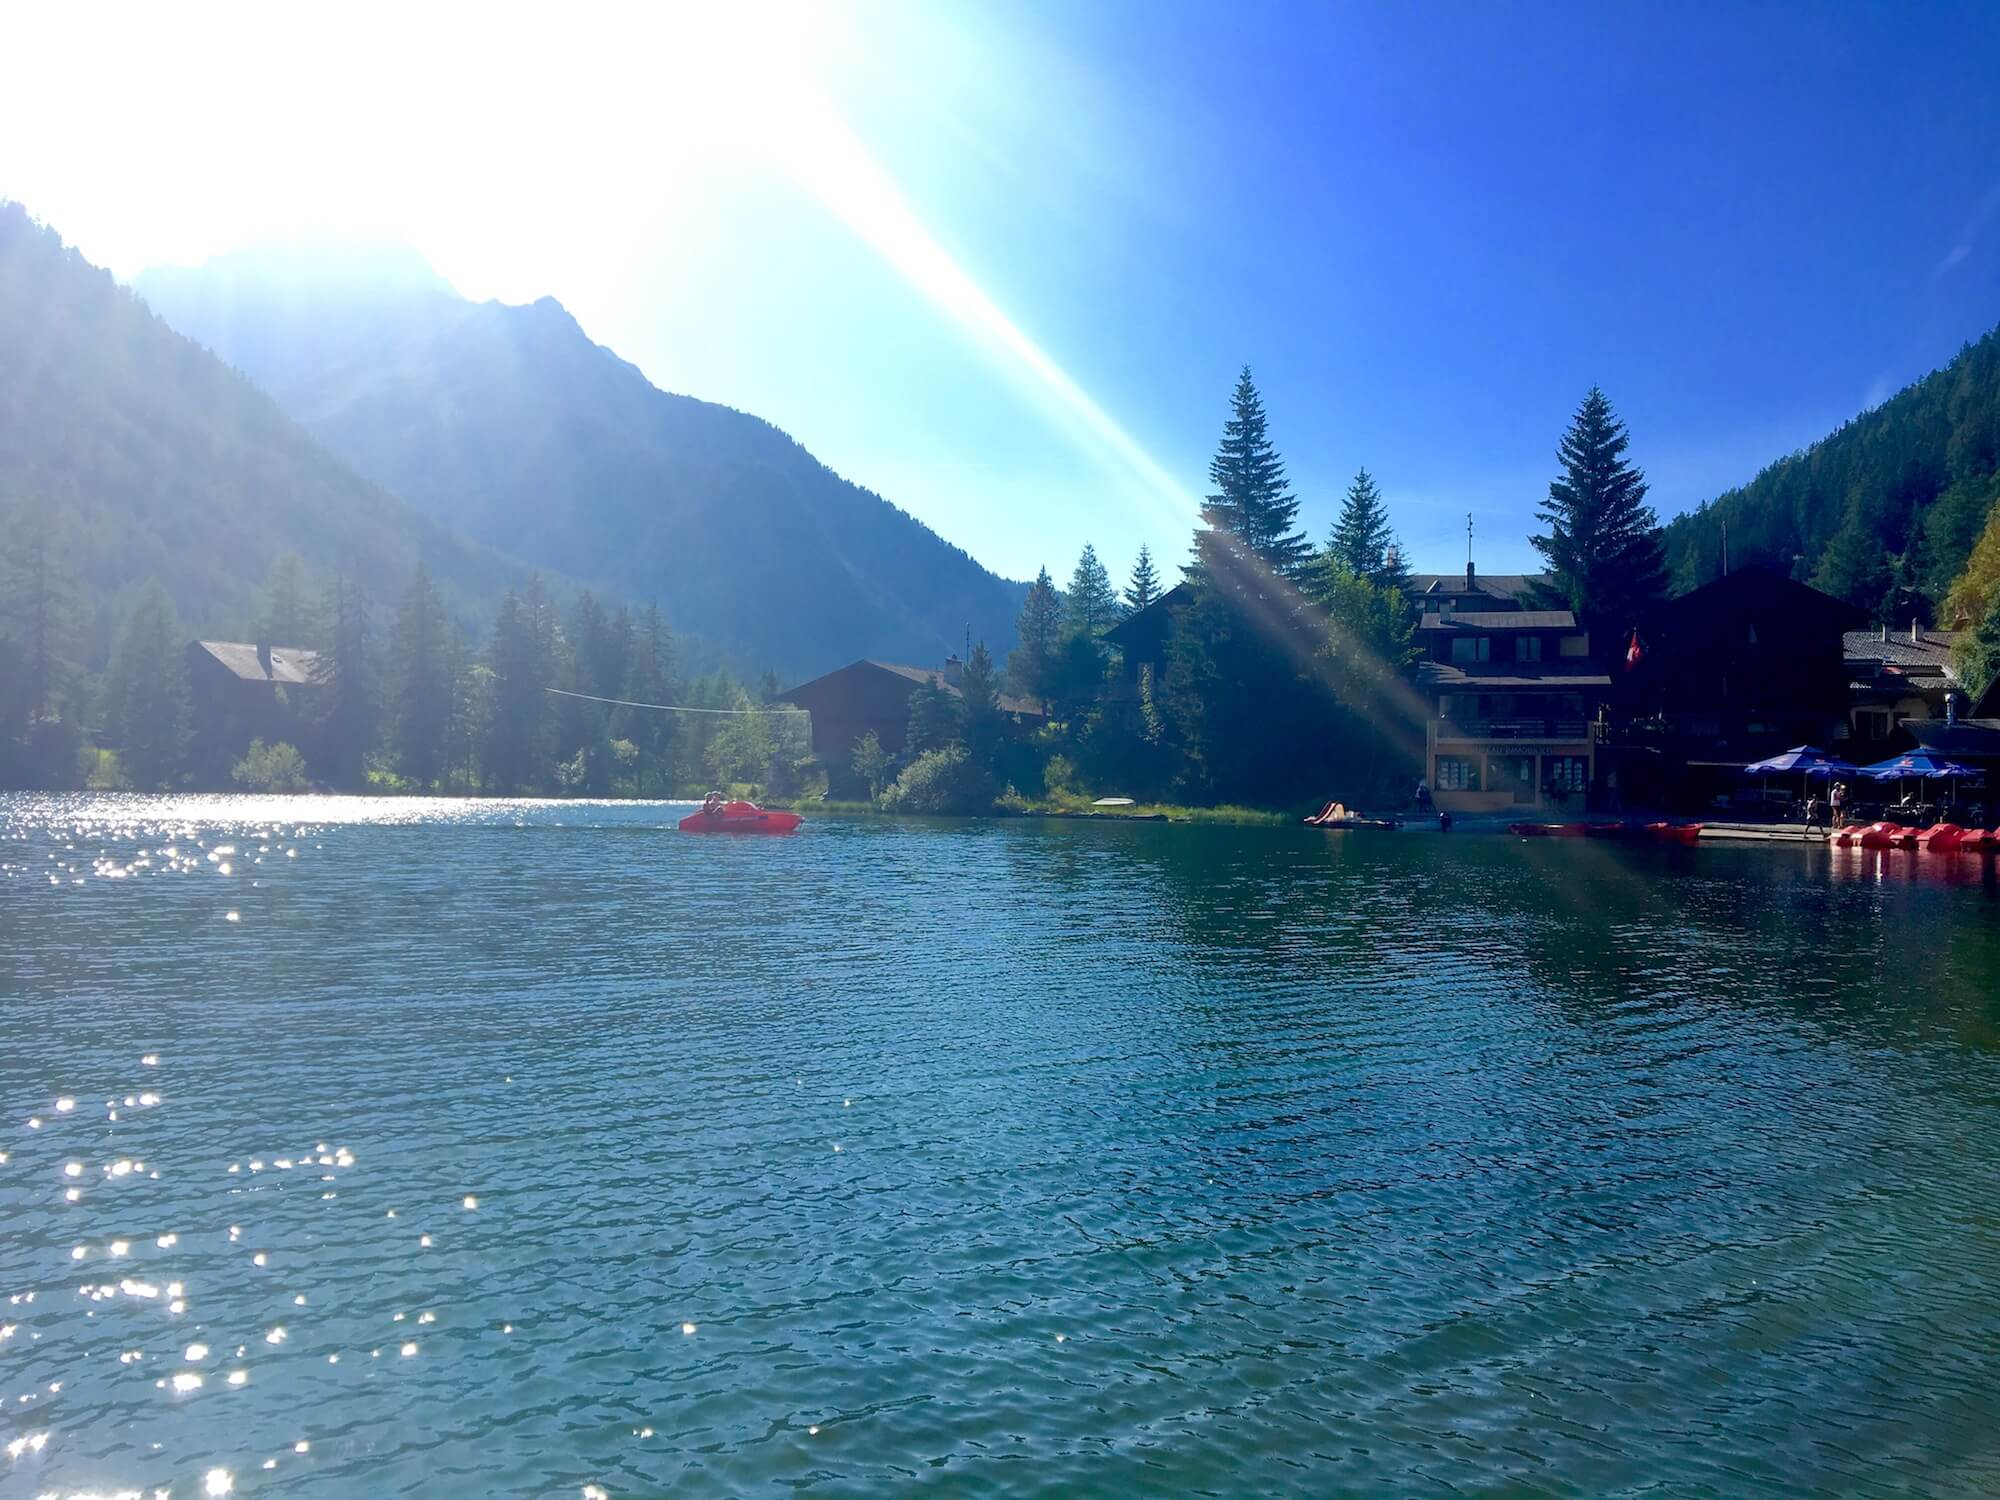 Champex-Lac:  A beautiful alpine lake to relax and enjoy after a long day of hiking. You can hire a row boat, fish or have a dip if the water isn't too cold.